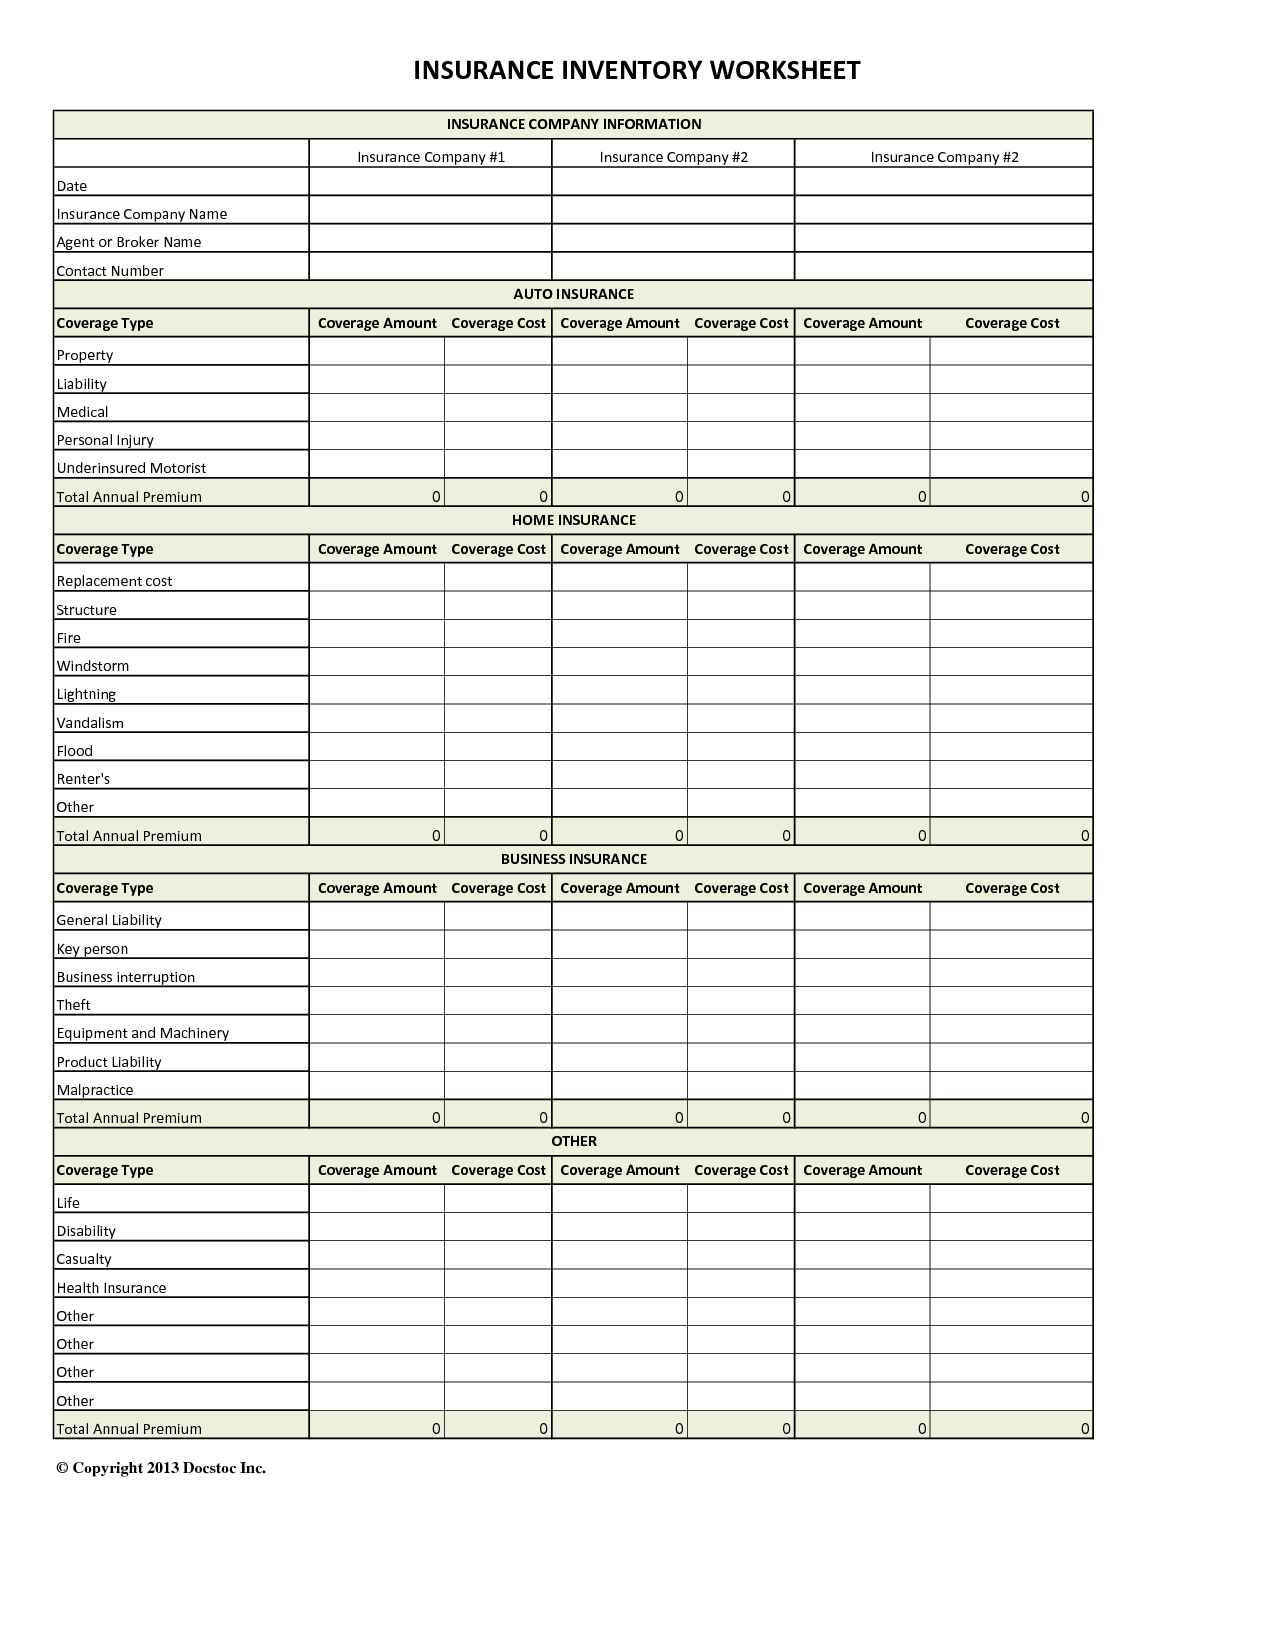 Excel Insurance Investory Spreadsheet Quote Templates